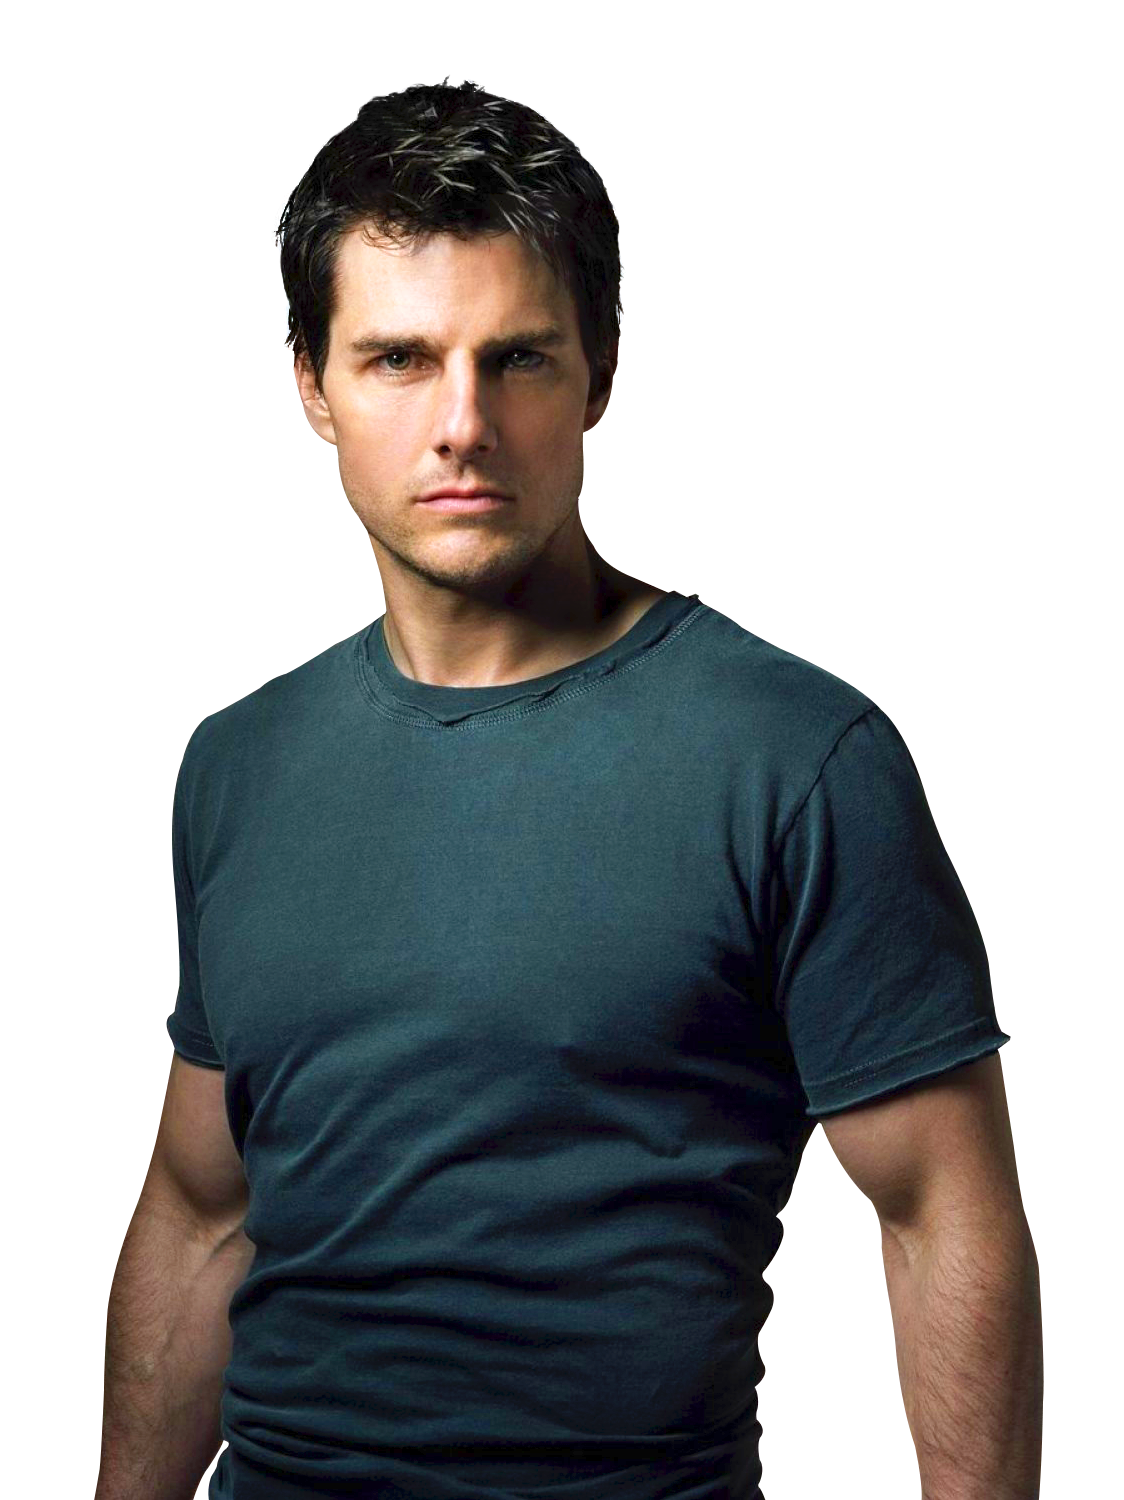 Tom Cruise Transparent Background